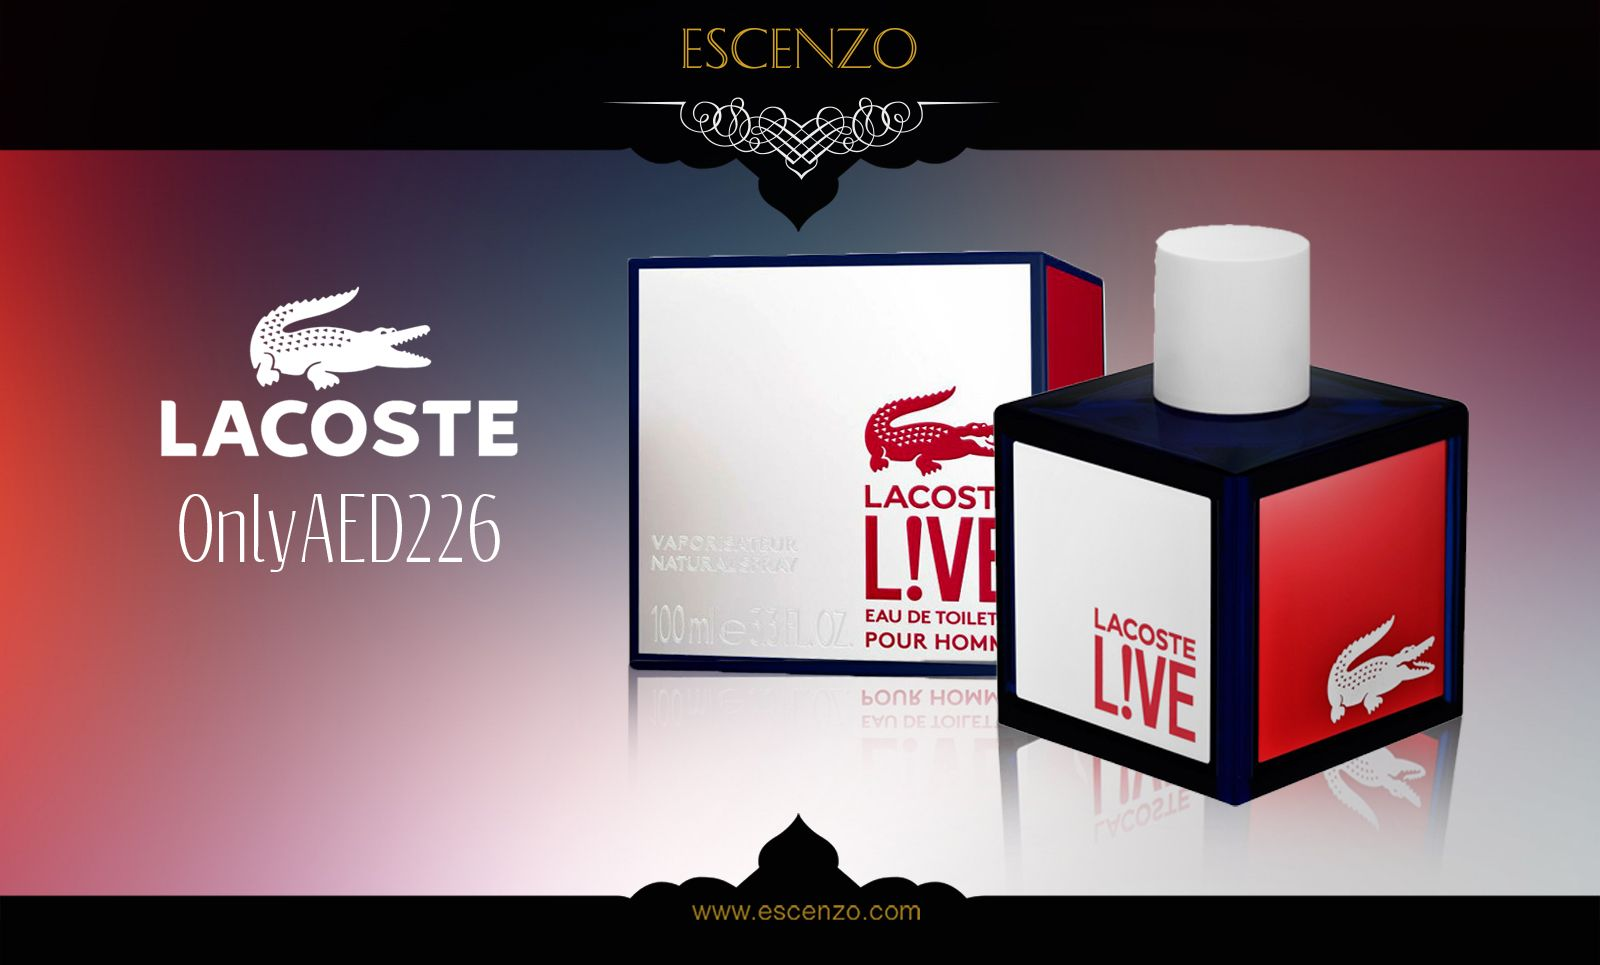 Get Lacoste Live for men on our price 226 AED. Order http